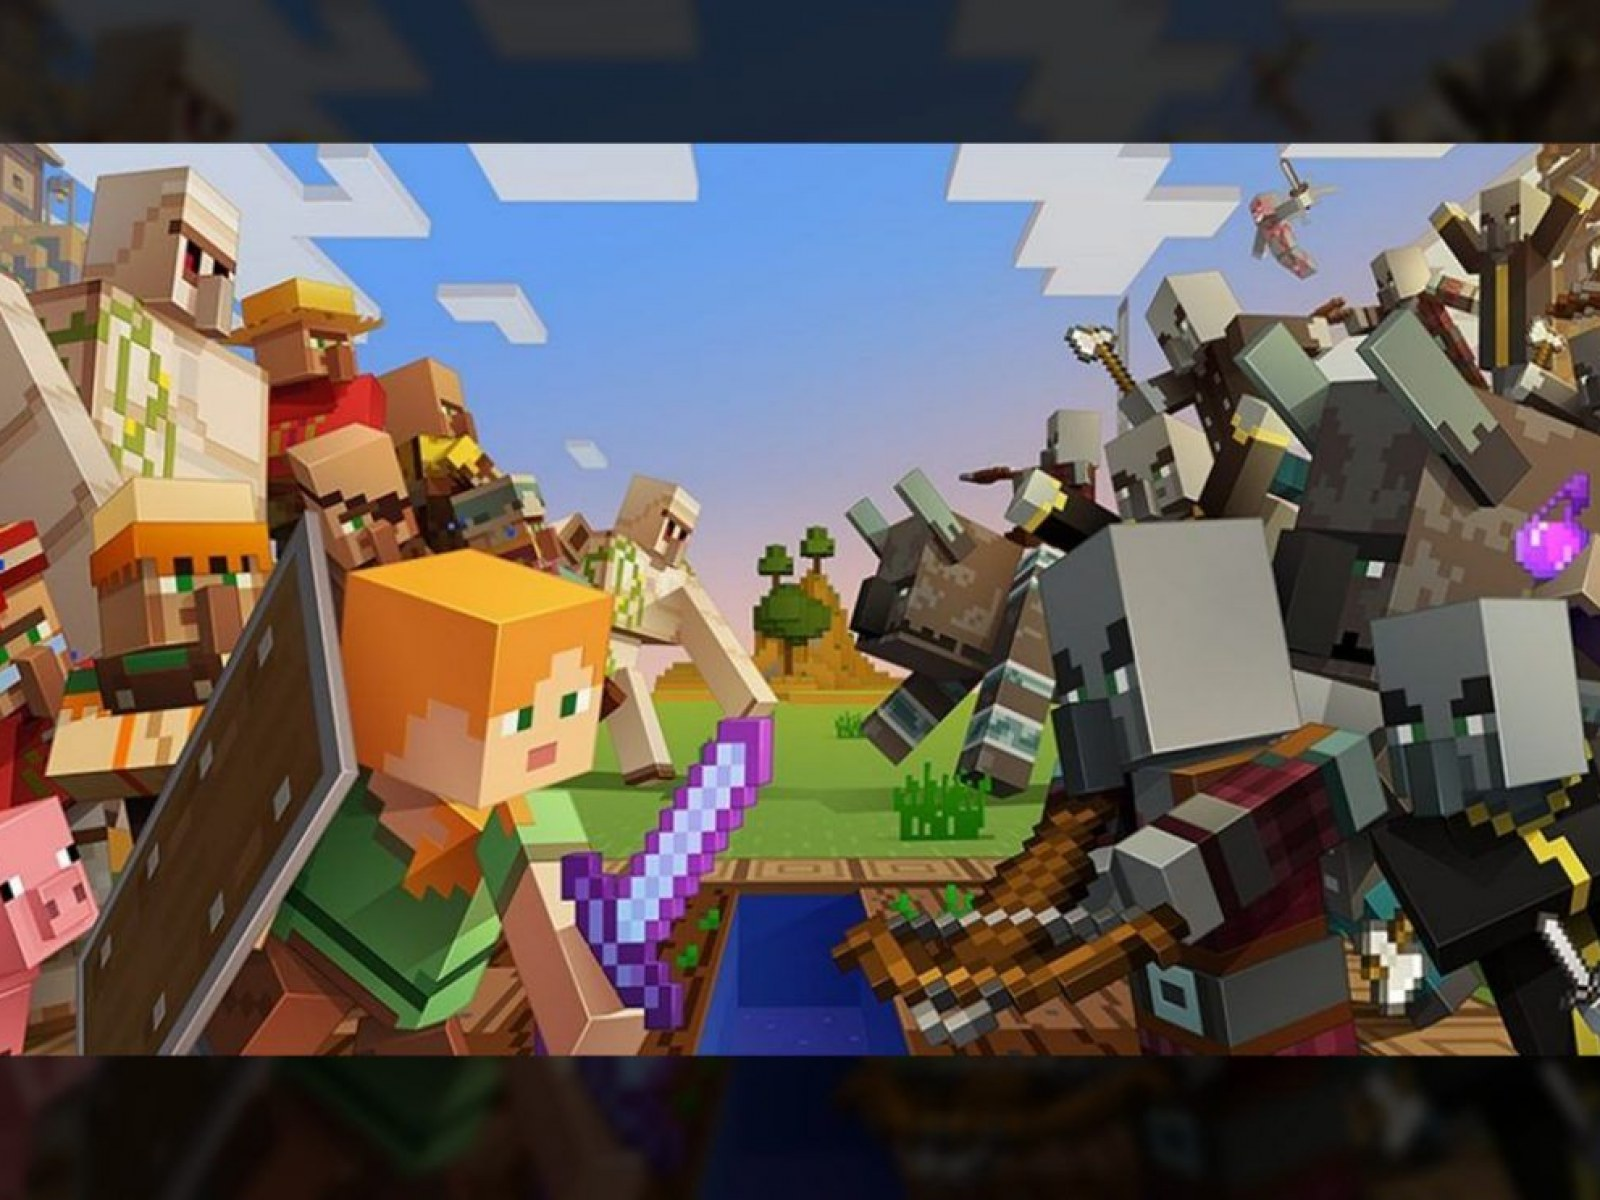 Minecraft Village And Pillage Update 1 14 Brings New Smithing Table